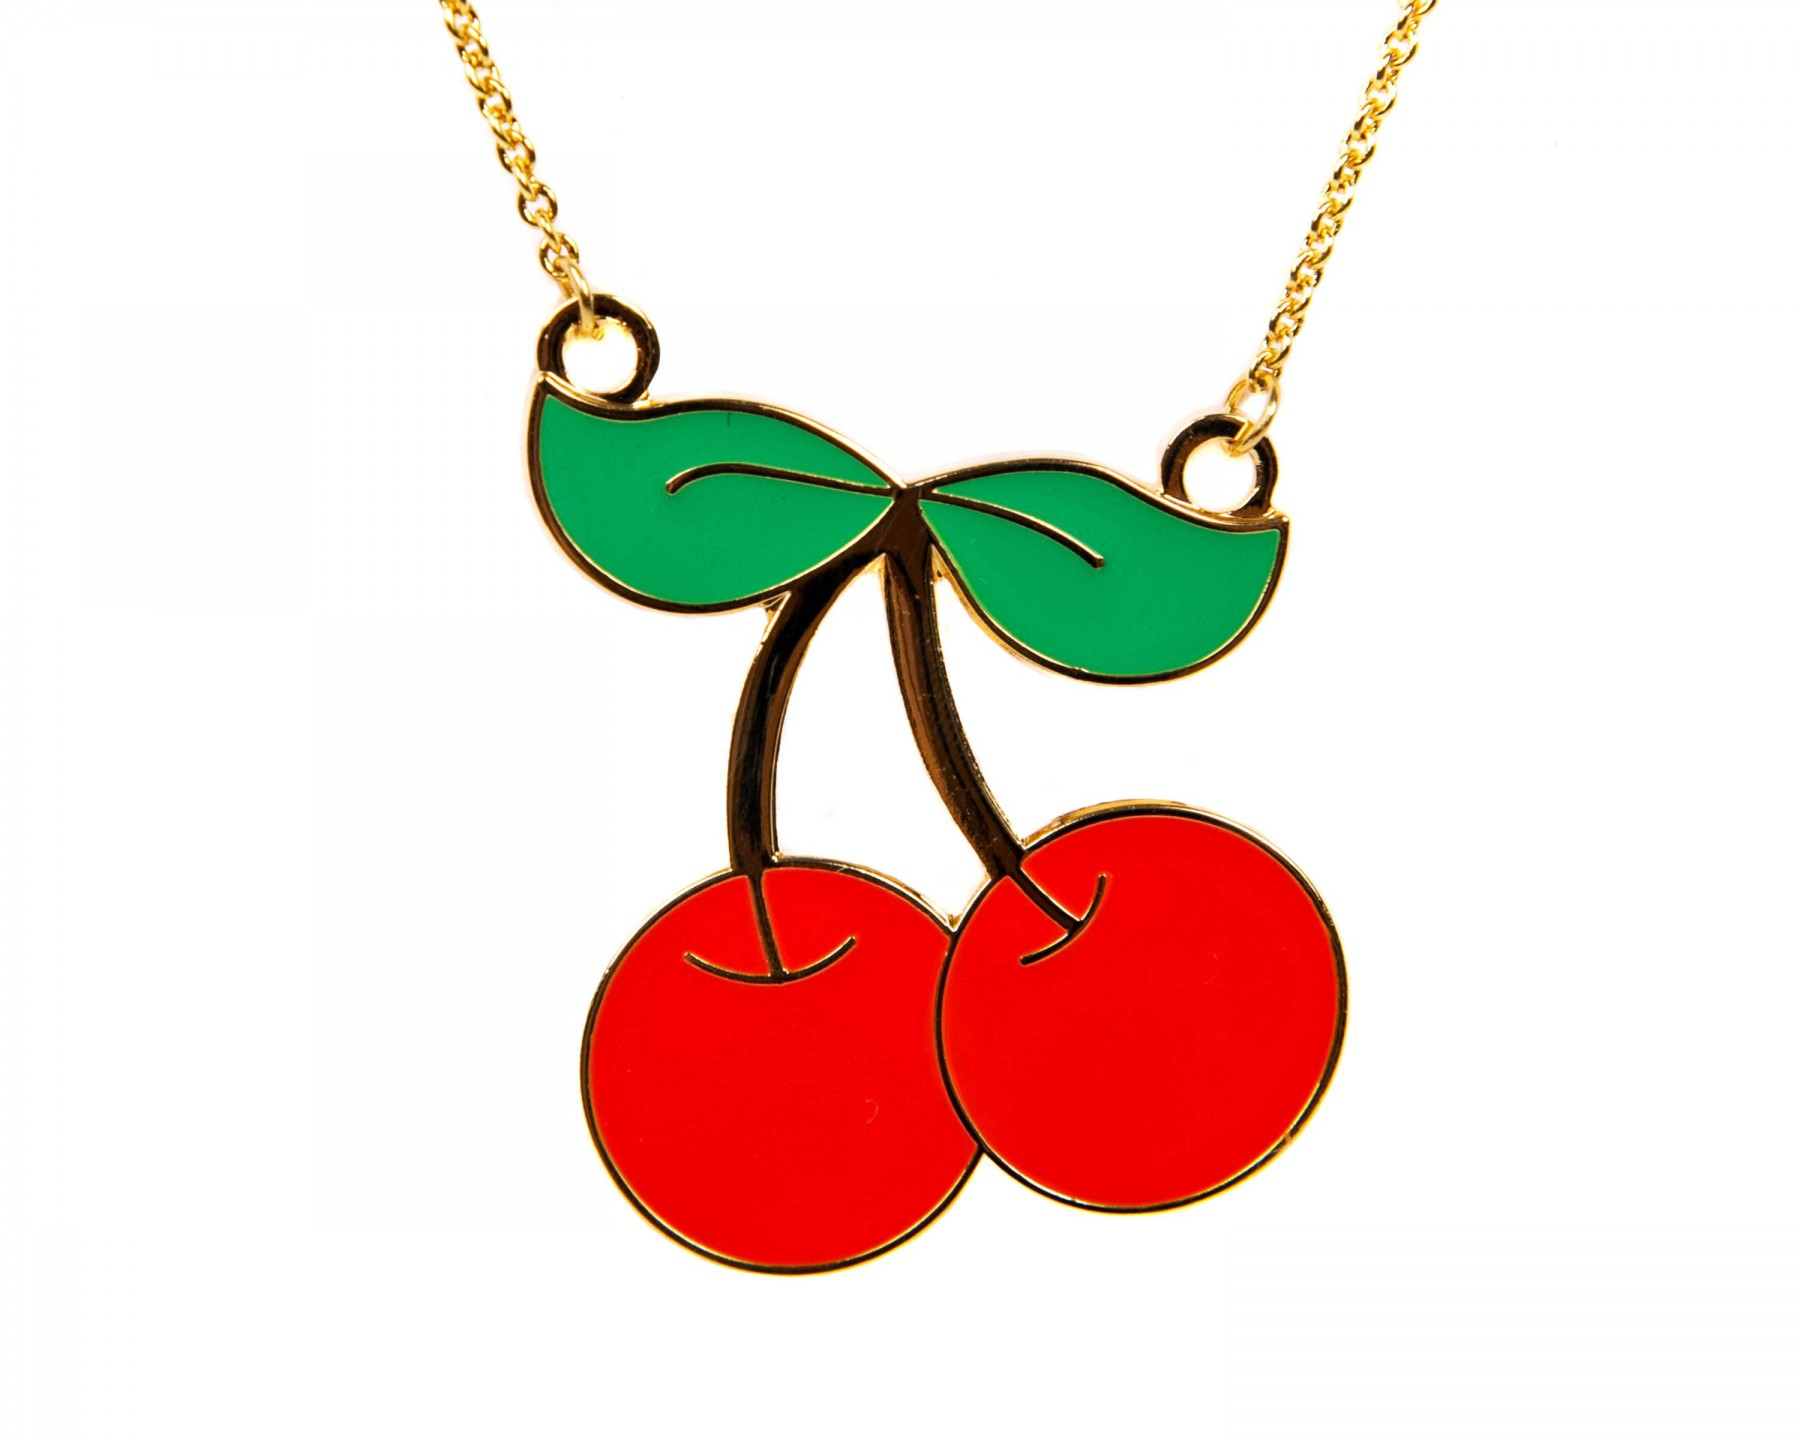 Cherry Necklace - By Acorn   Will - Pinks   Green a7f451073b6c